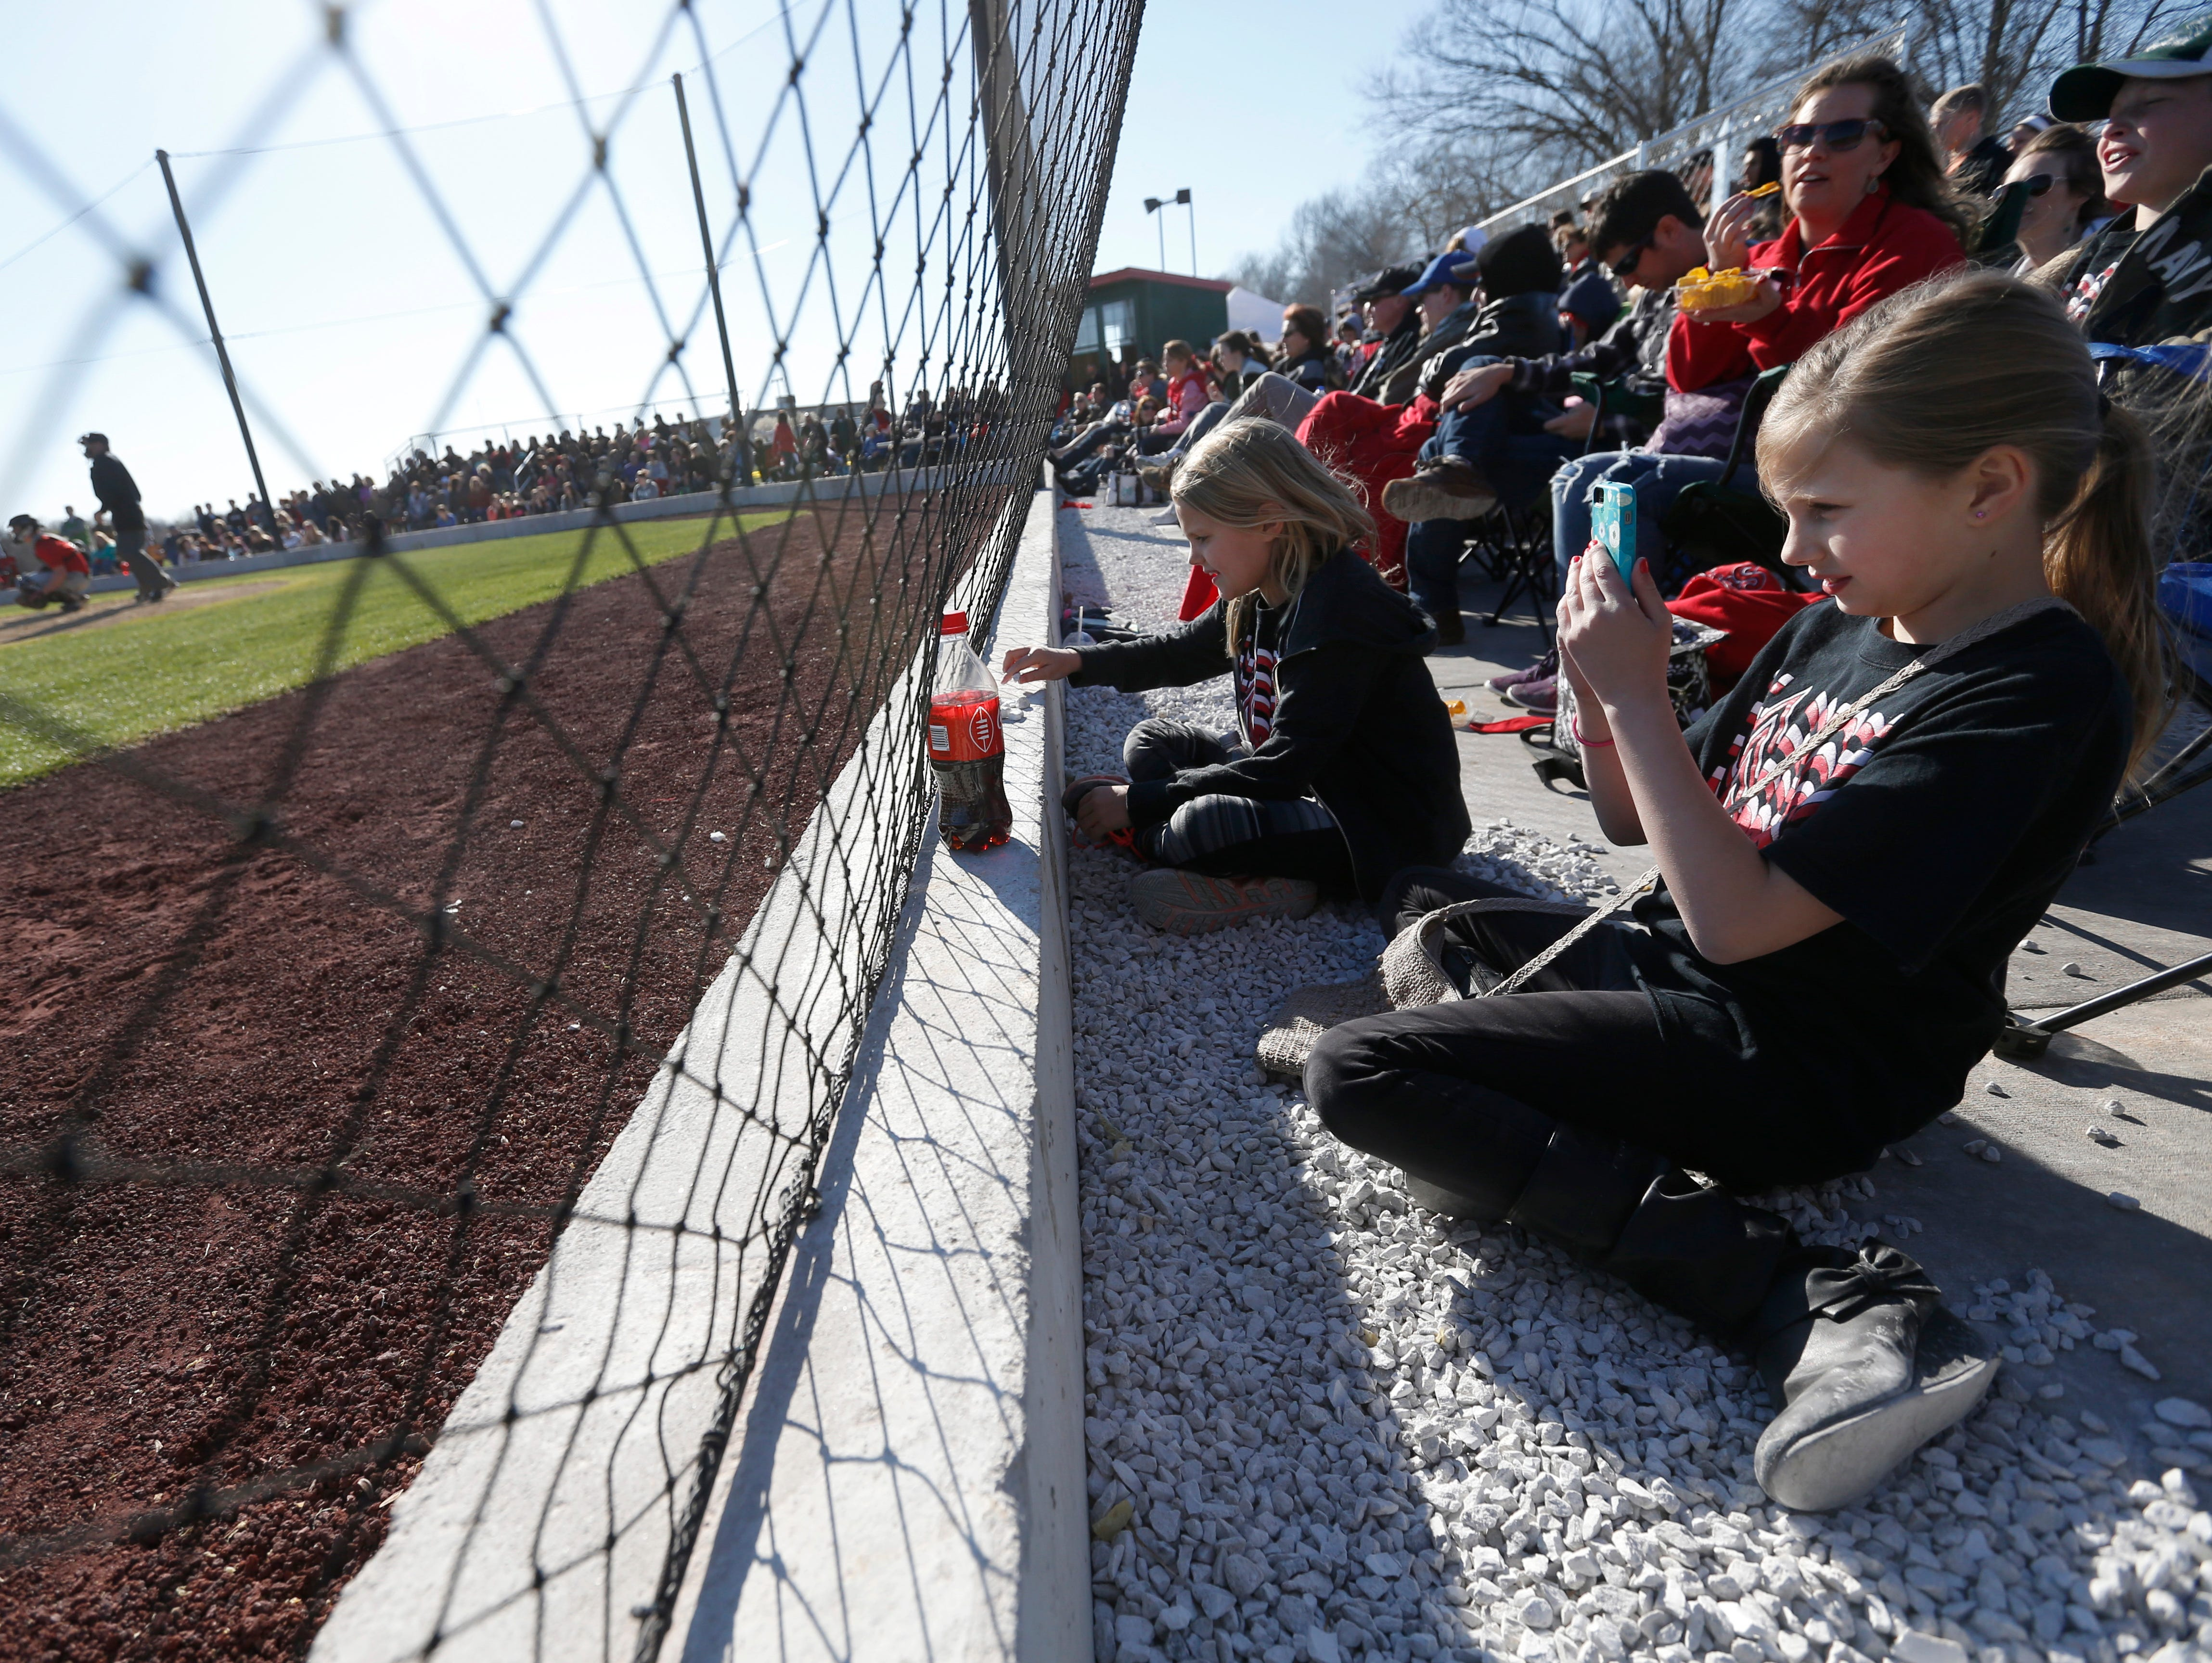 Noelle Germany, 10, right, takes a photo during the New Covenant Academy Warriors baseball team's first game at Federal Protection Field on Monday, Mar. 21, 2016.